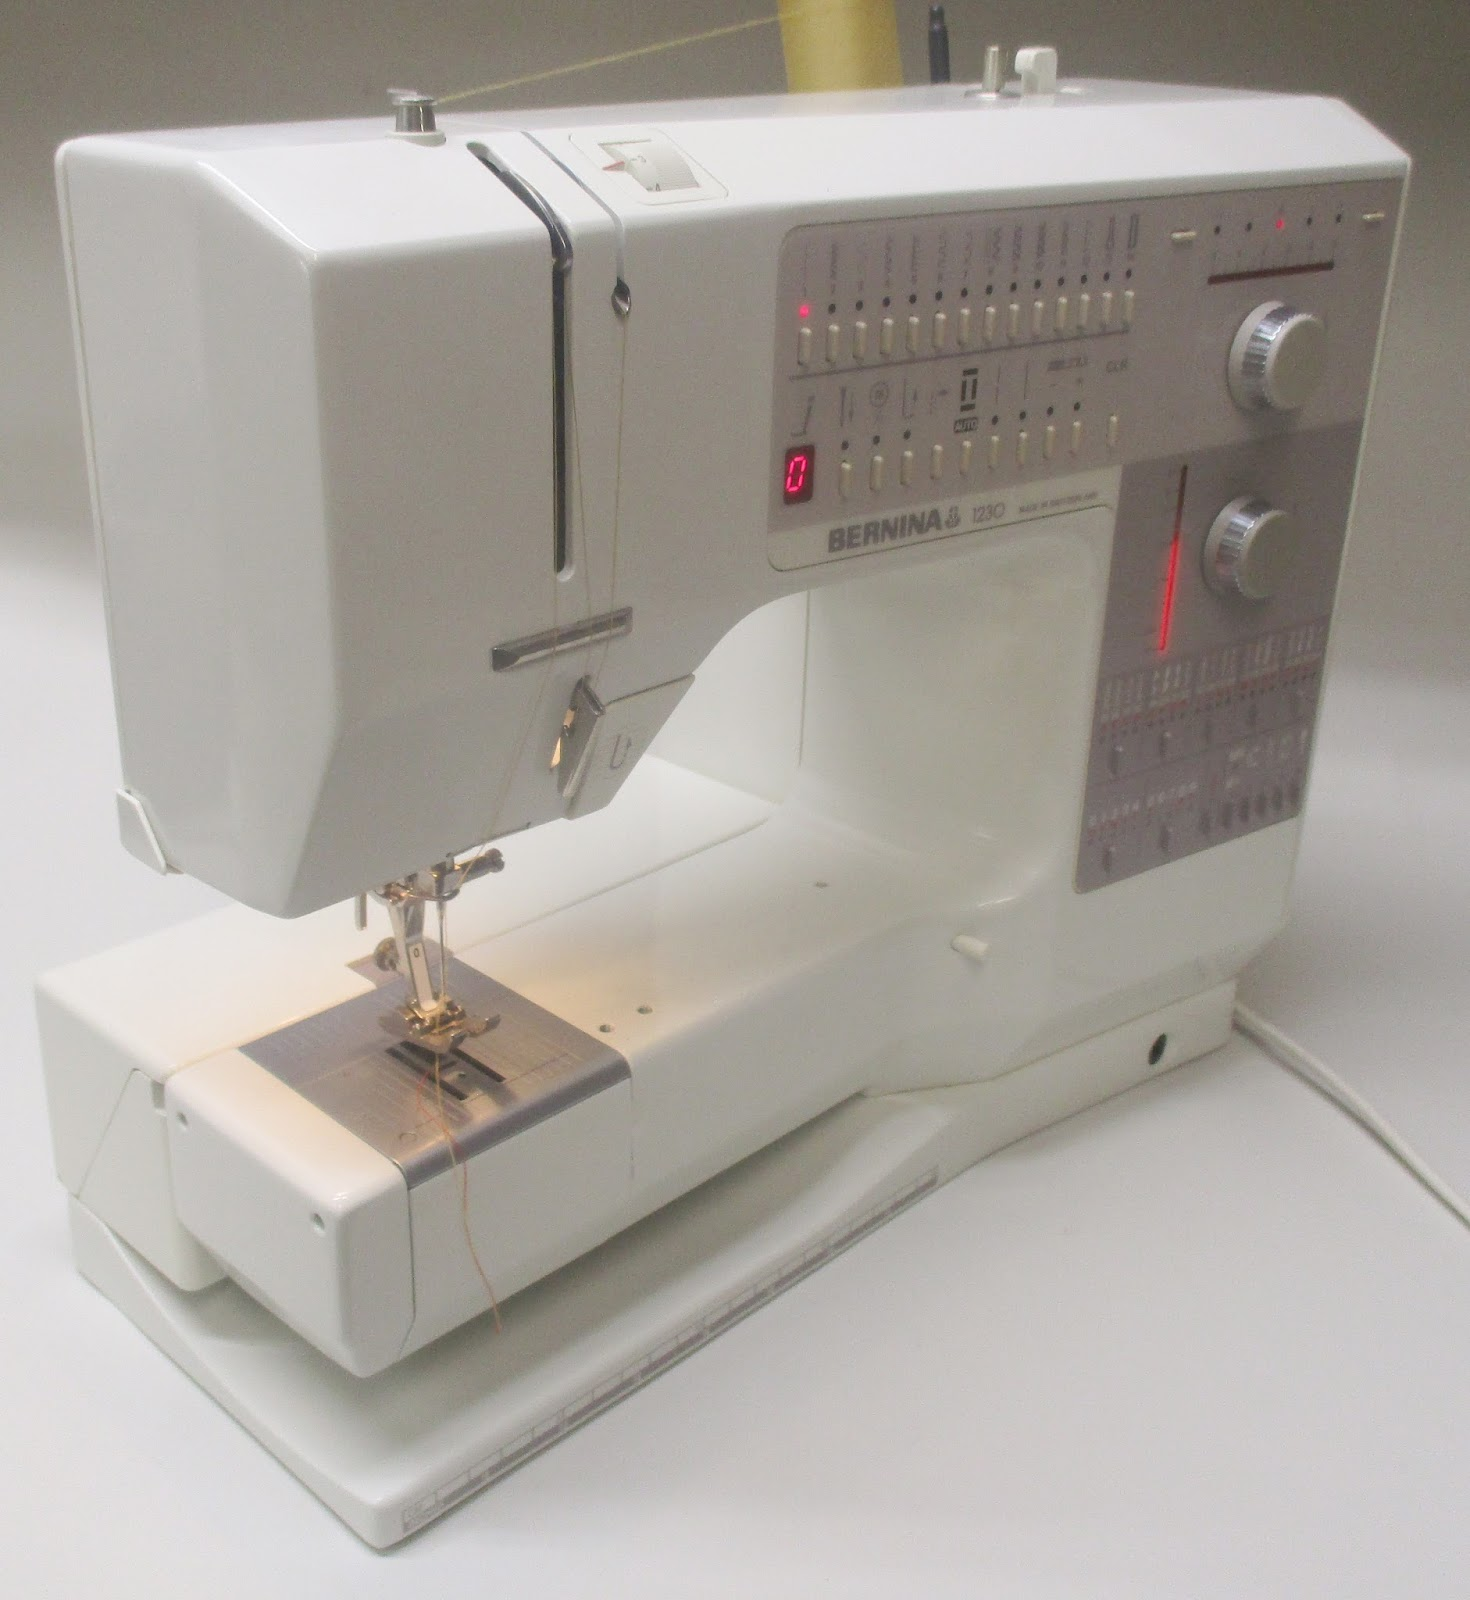 Mi Vintage Sewing Machines Necchi Bu Machine Threading Diagram The Dials Combined With Led Temperature Style Bars Are Home Run Part Of